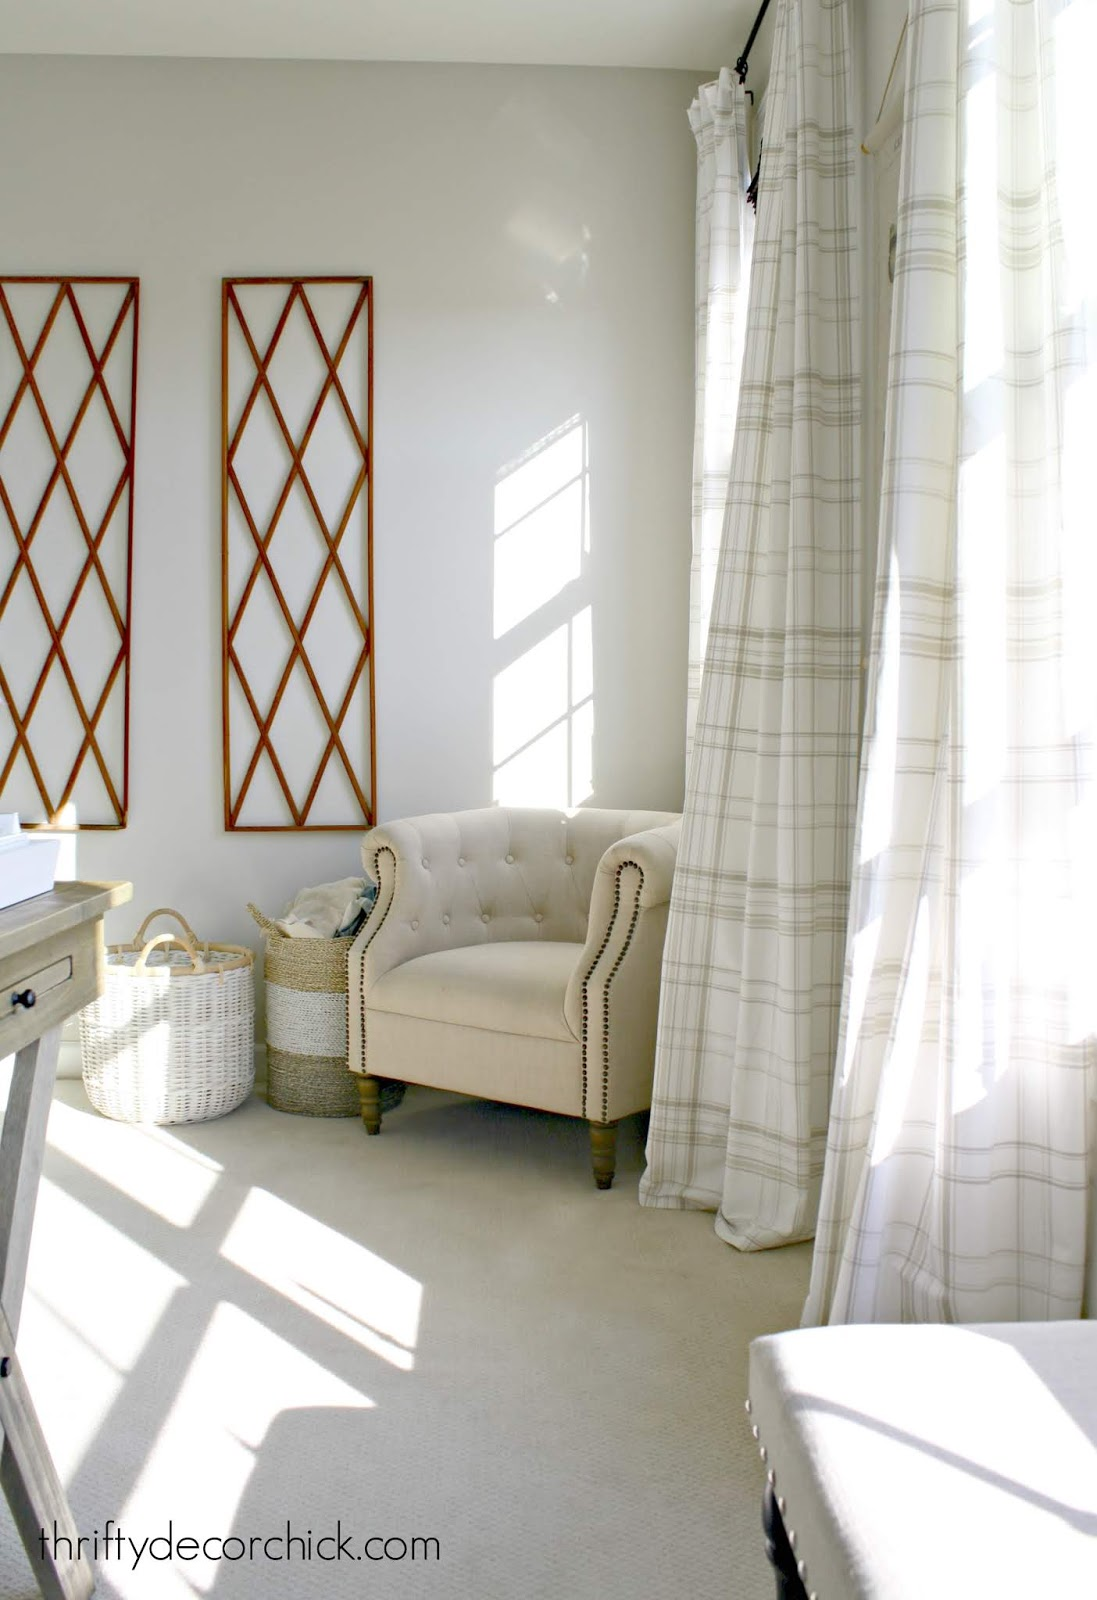 Neutral plaid drapes